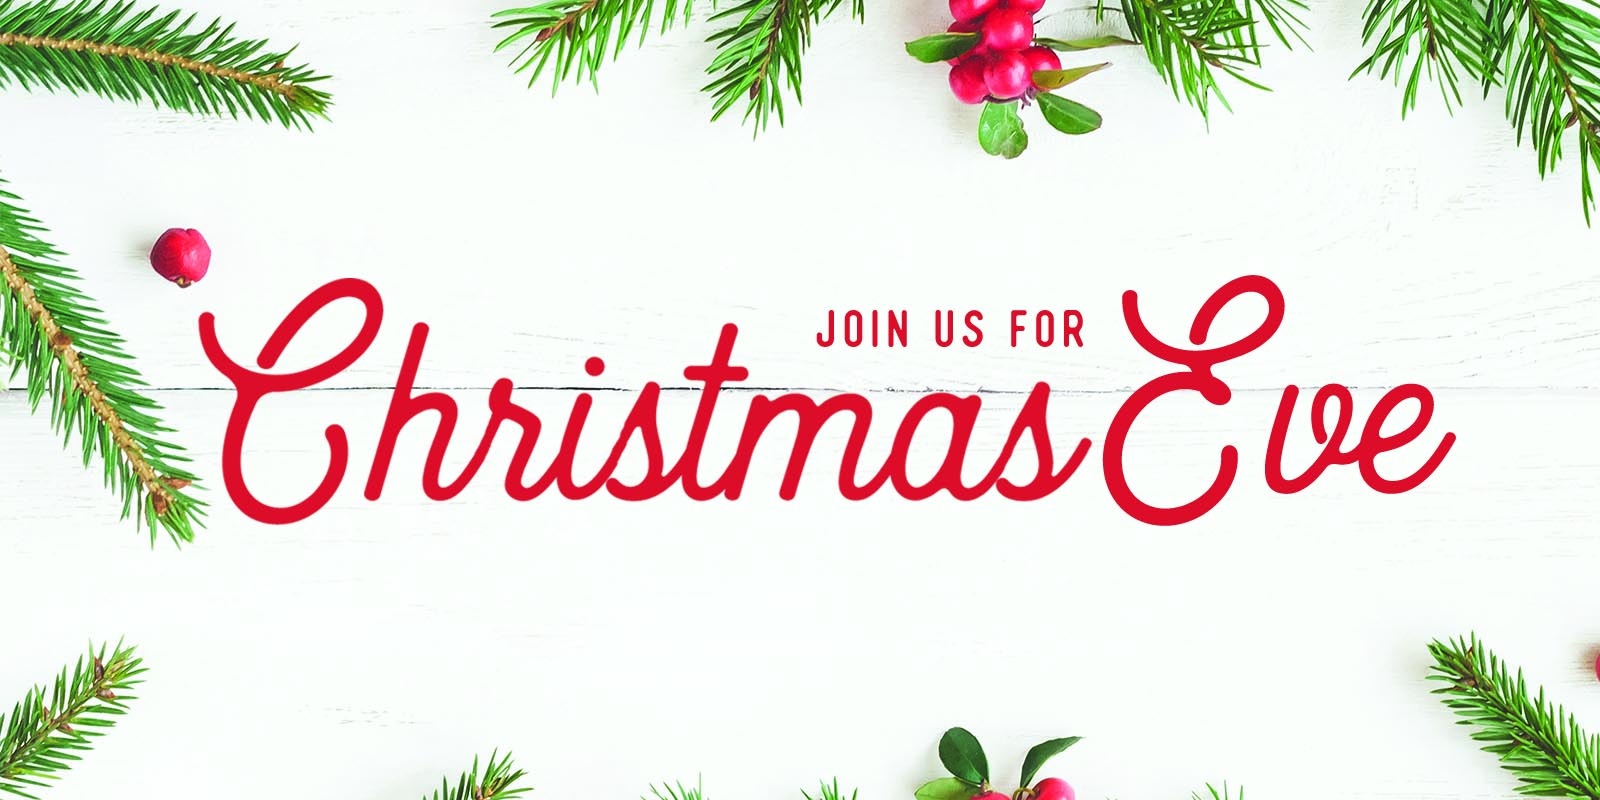 timberlake church issaquah will host morning christmas eve services at regal cinema at 915am and 1030am - Church Of The Highlands Christmas